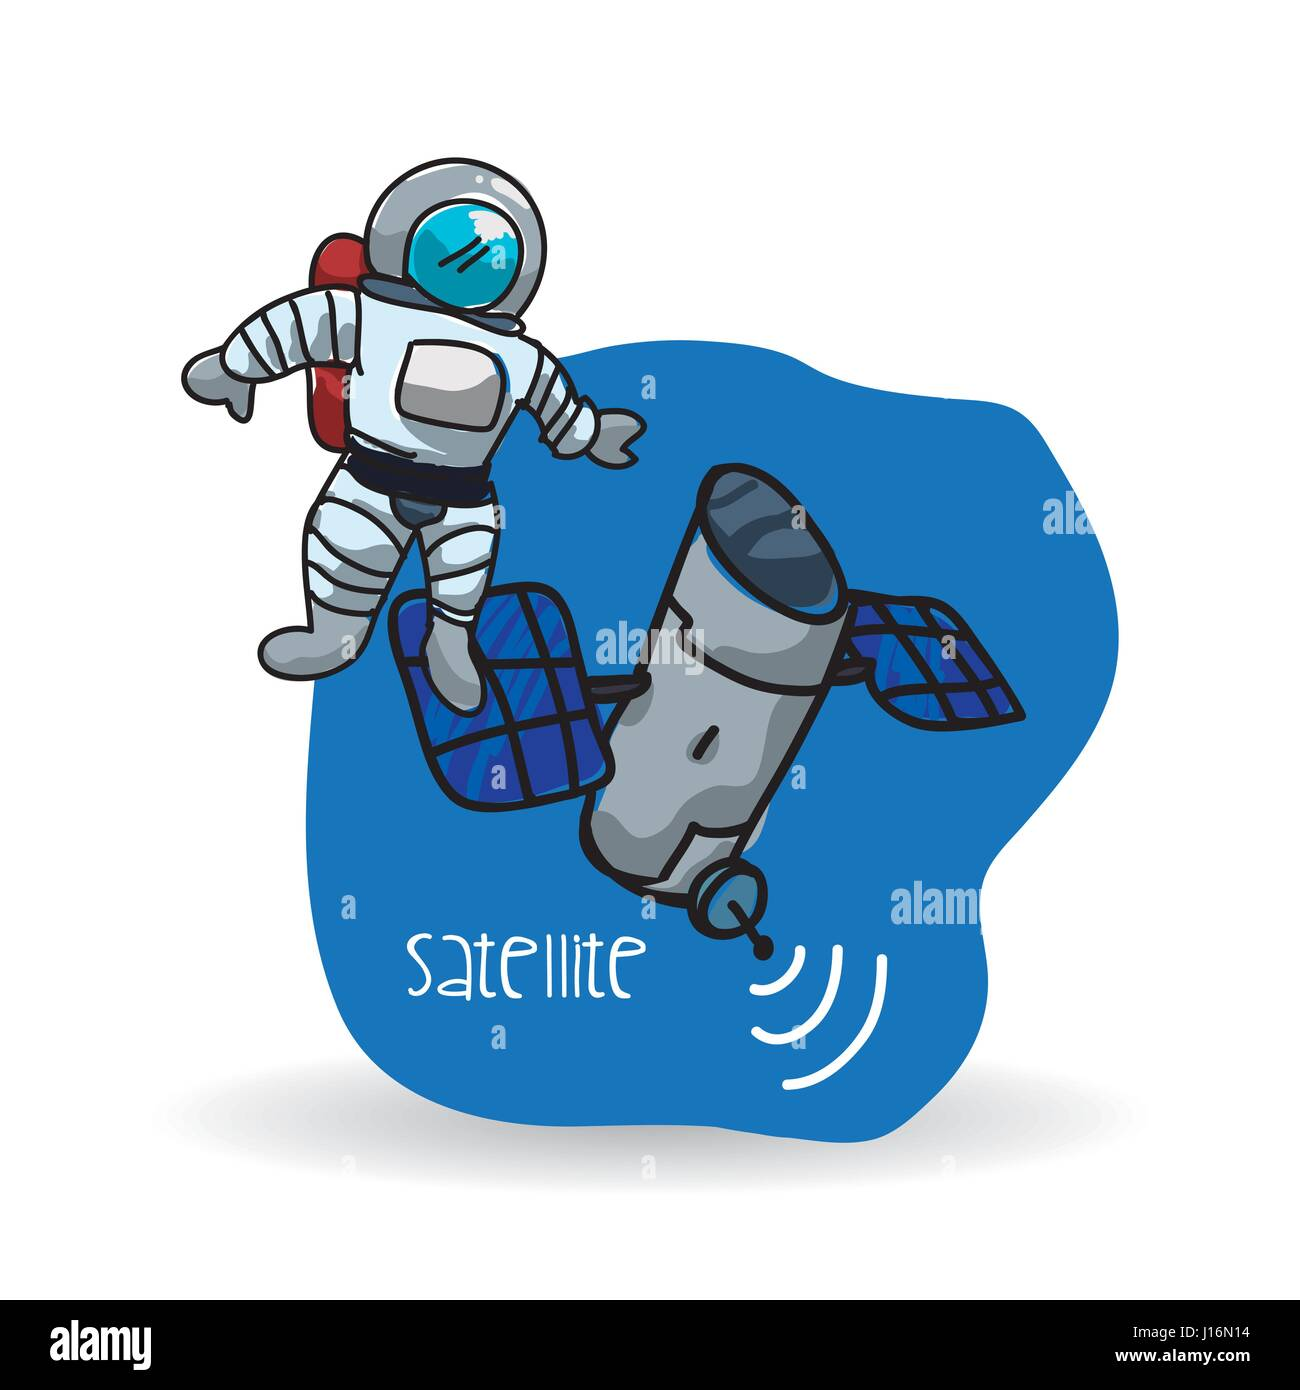 Space design. science icon. Isolated illustration , vector - Stock Image